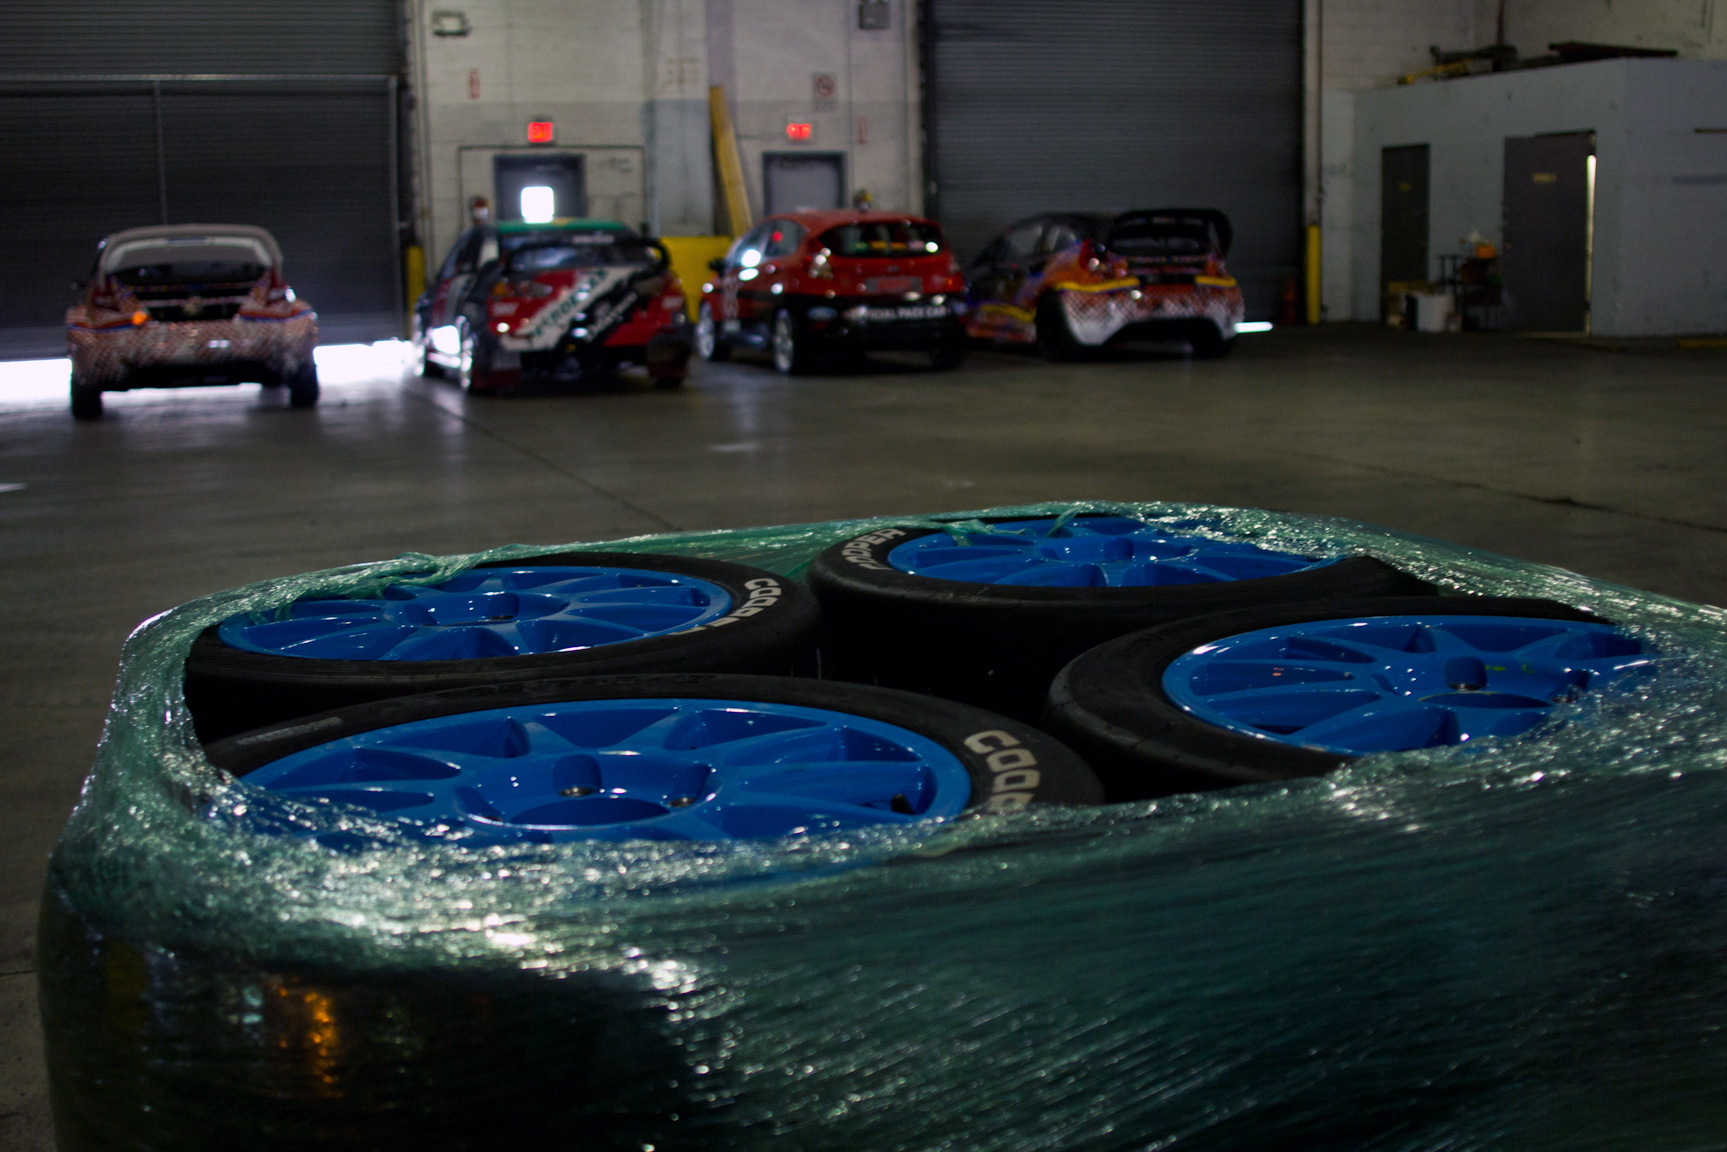 Ken Block's Ford Fiesta ST RX43 comes prepared with plenty of spare tires to kick off the Global RallyCross season in Foz do Iguaçu, Brazil.